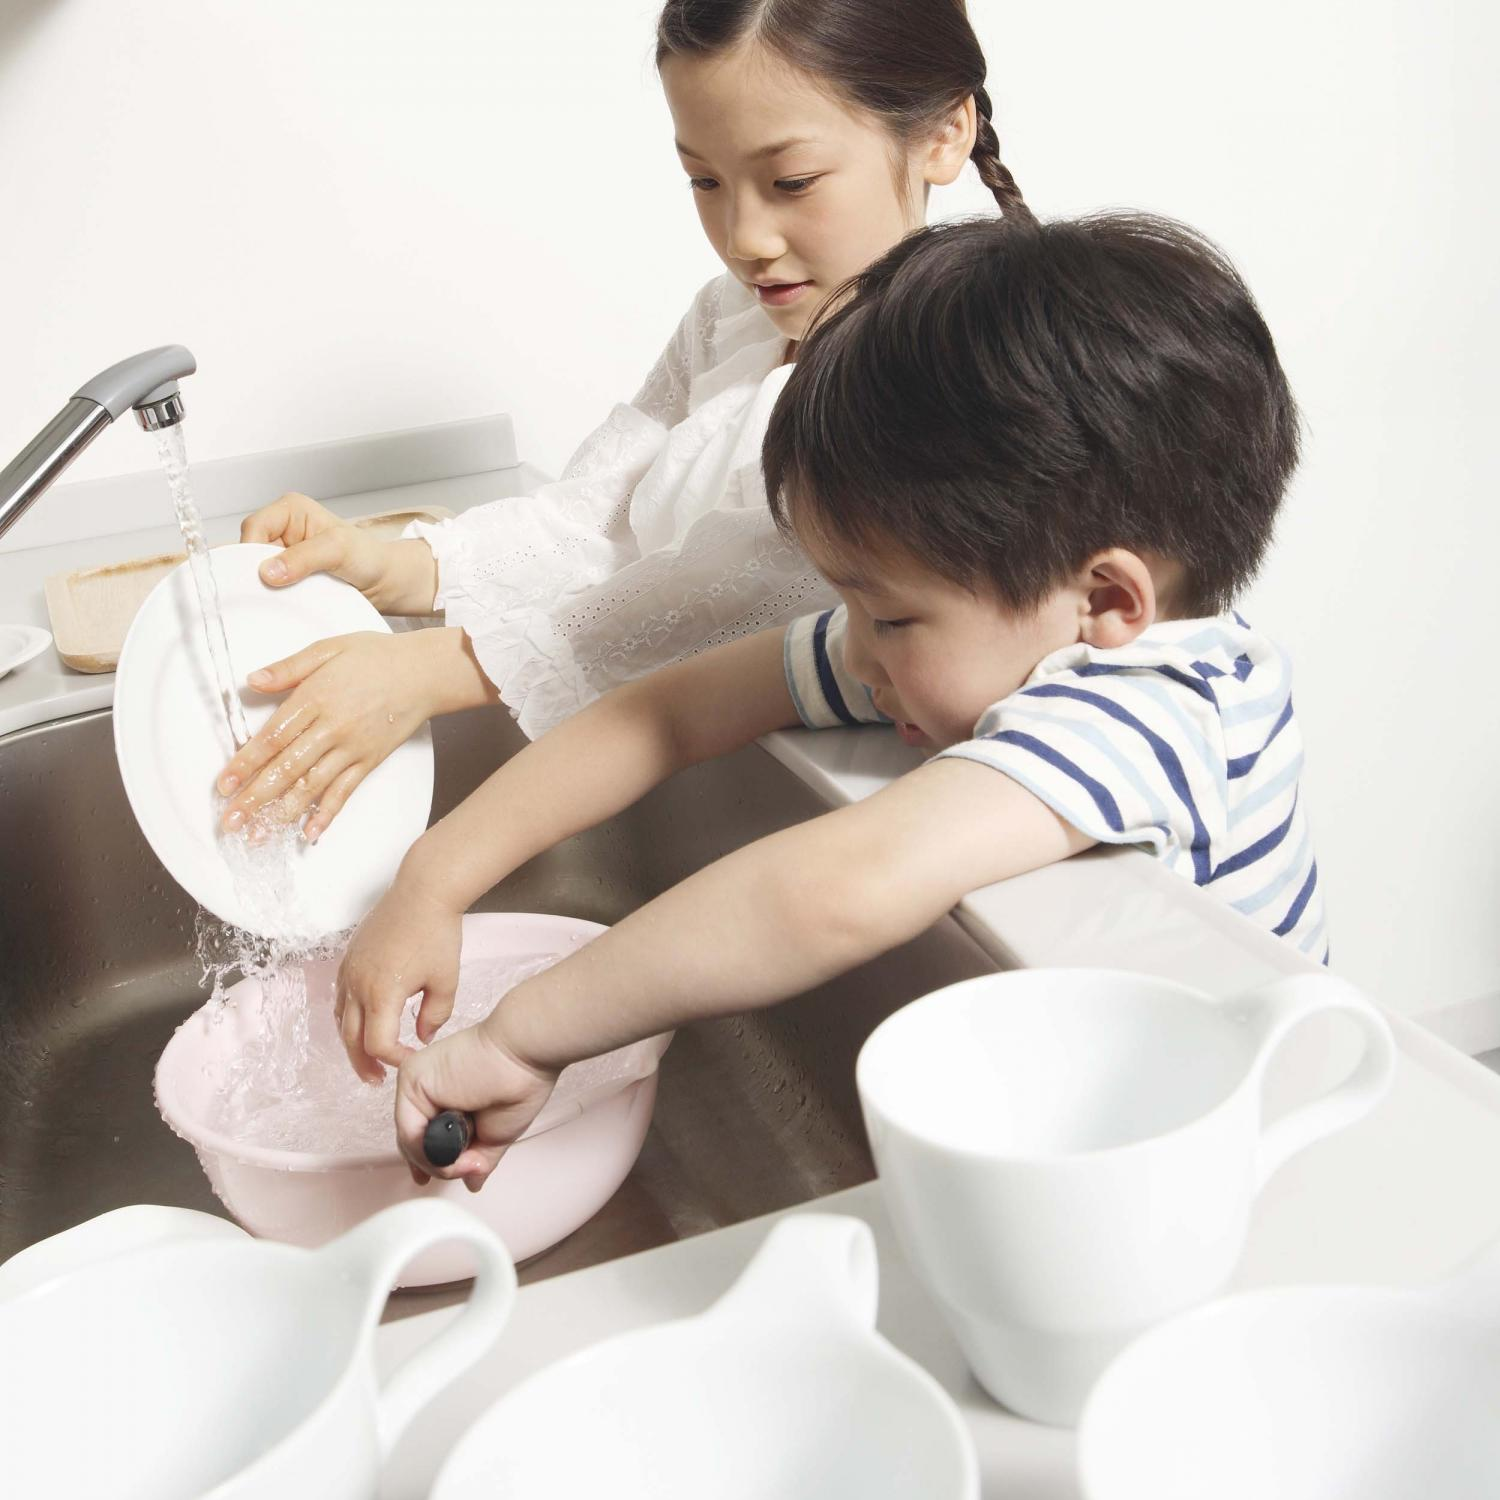 How Can We Help Kids With Self >> 9 Ways To Help Your Child Be More Self Sufficient Parenting